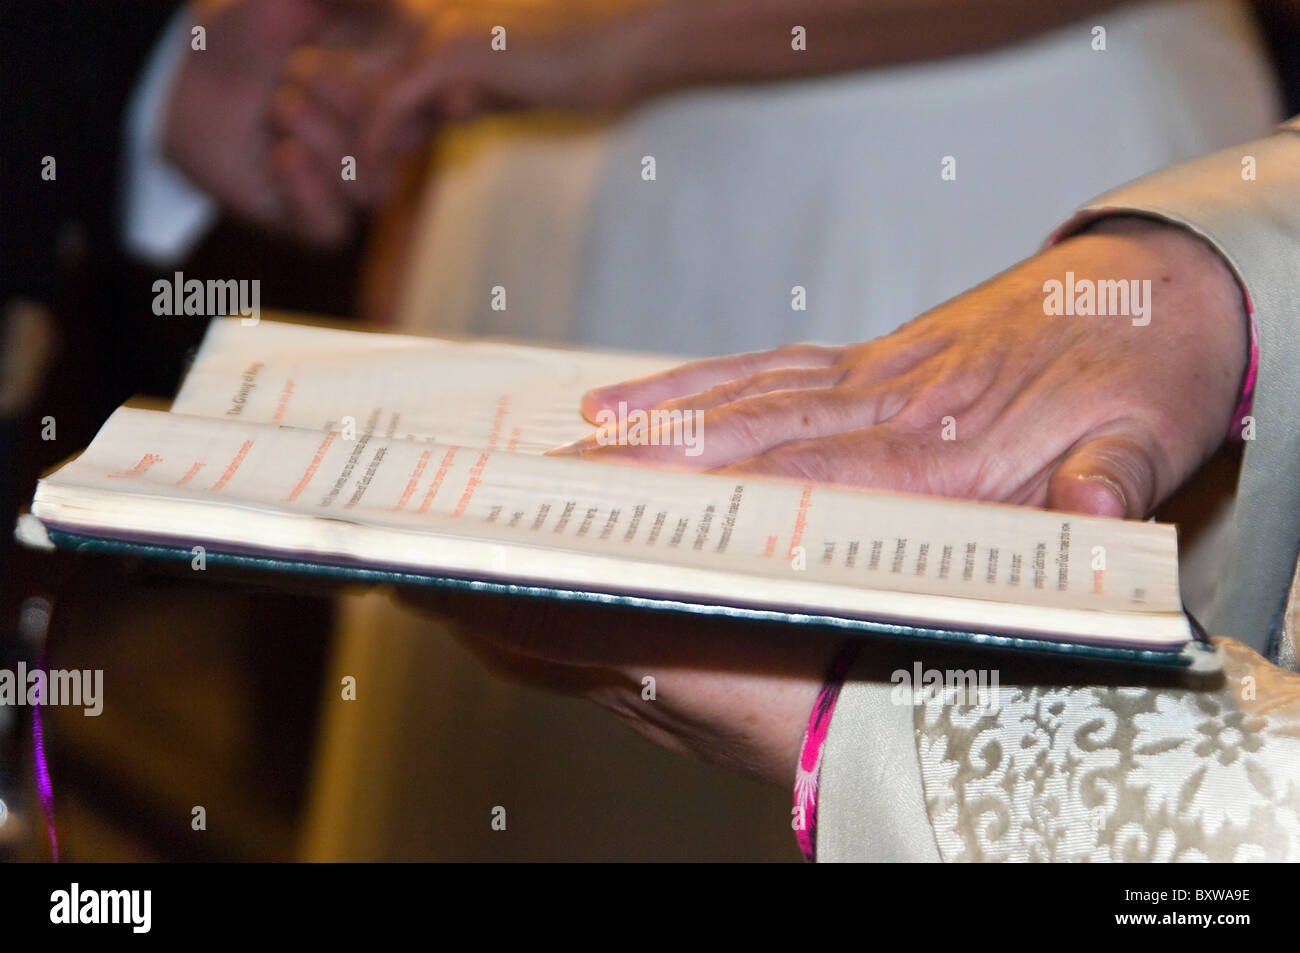 Horizontal Close Up Of Wedding Vows Being Read From A Book